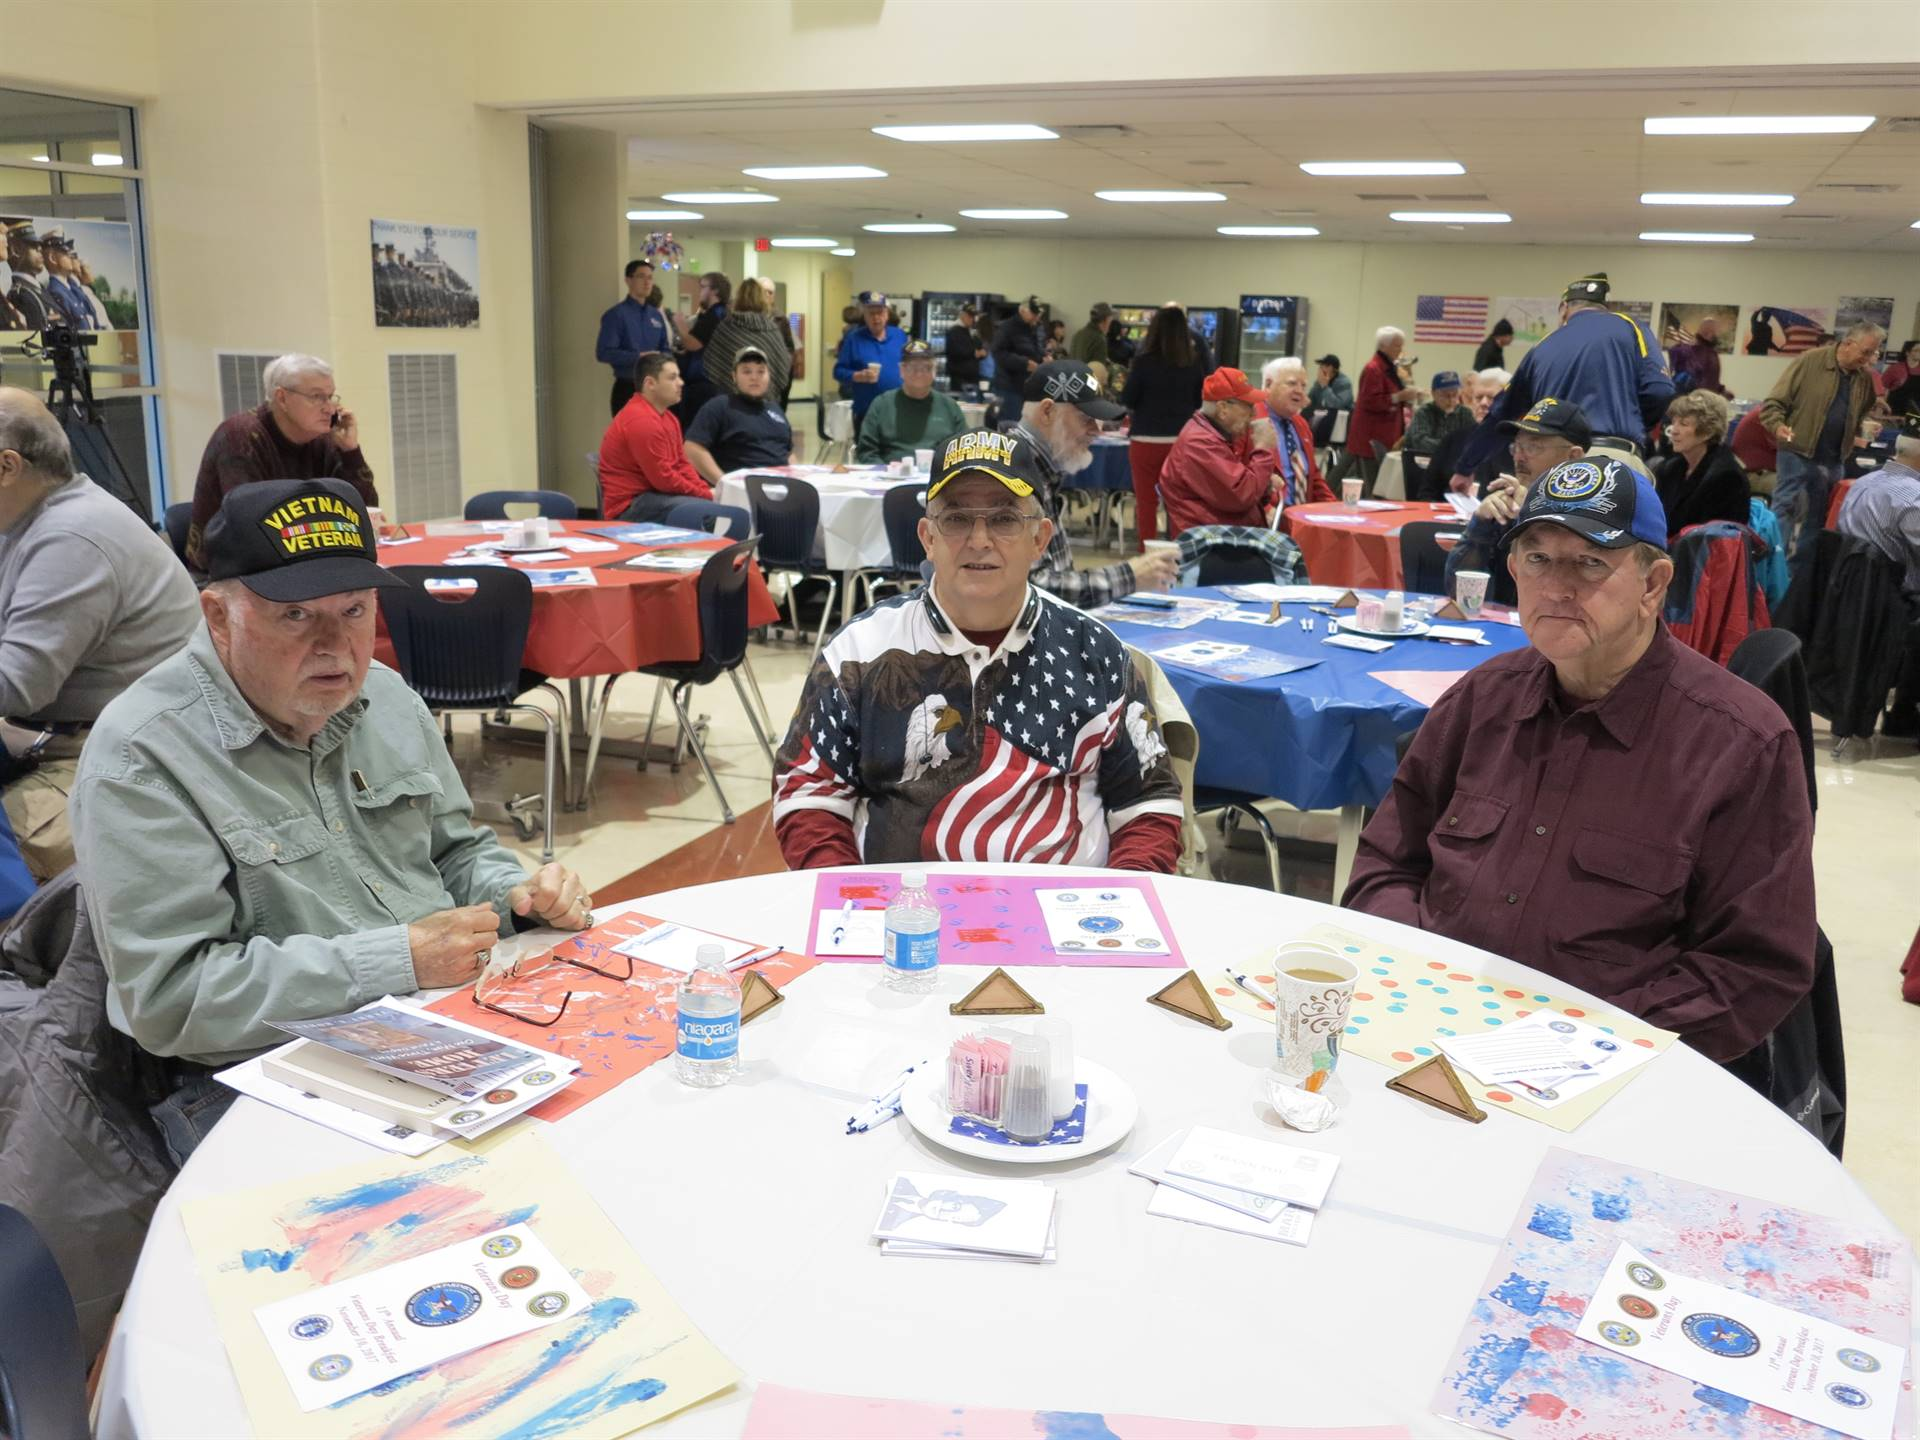 Attendees at the WCCC Veterans Day Breakfast